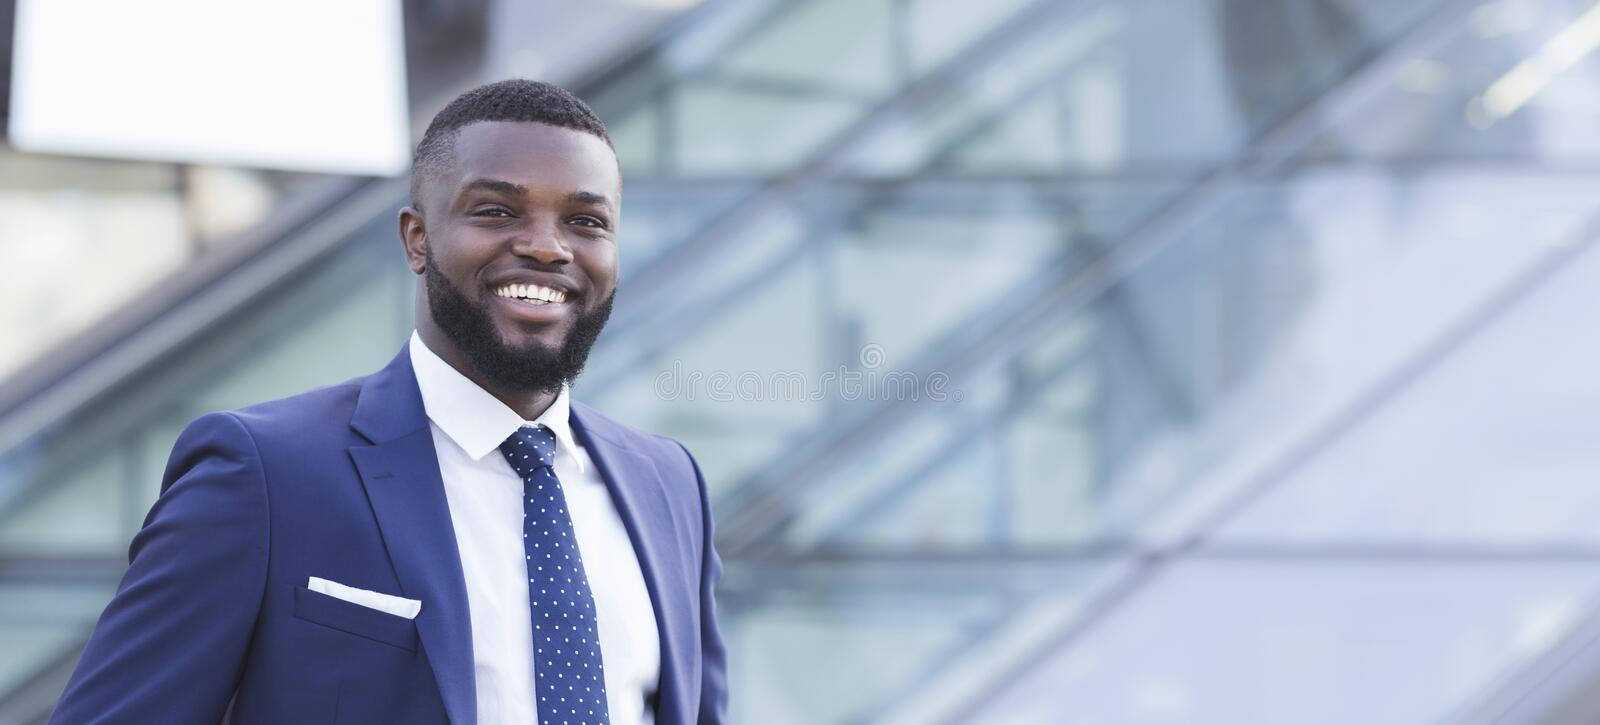 Cheerful Black Business Guy Smiling At Camera In Urban Area royalty free stock images